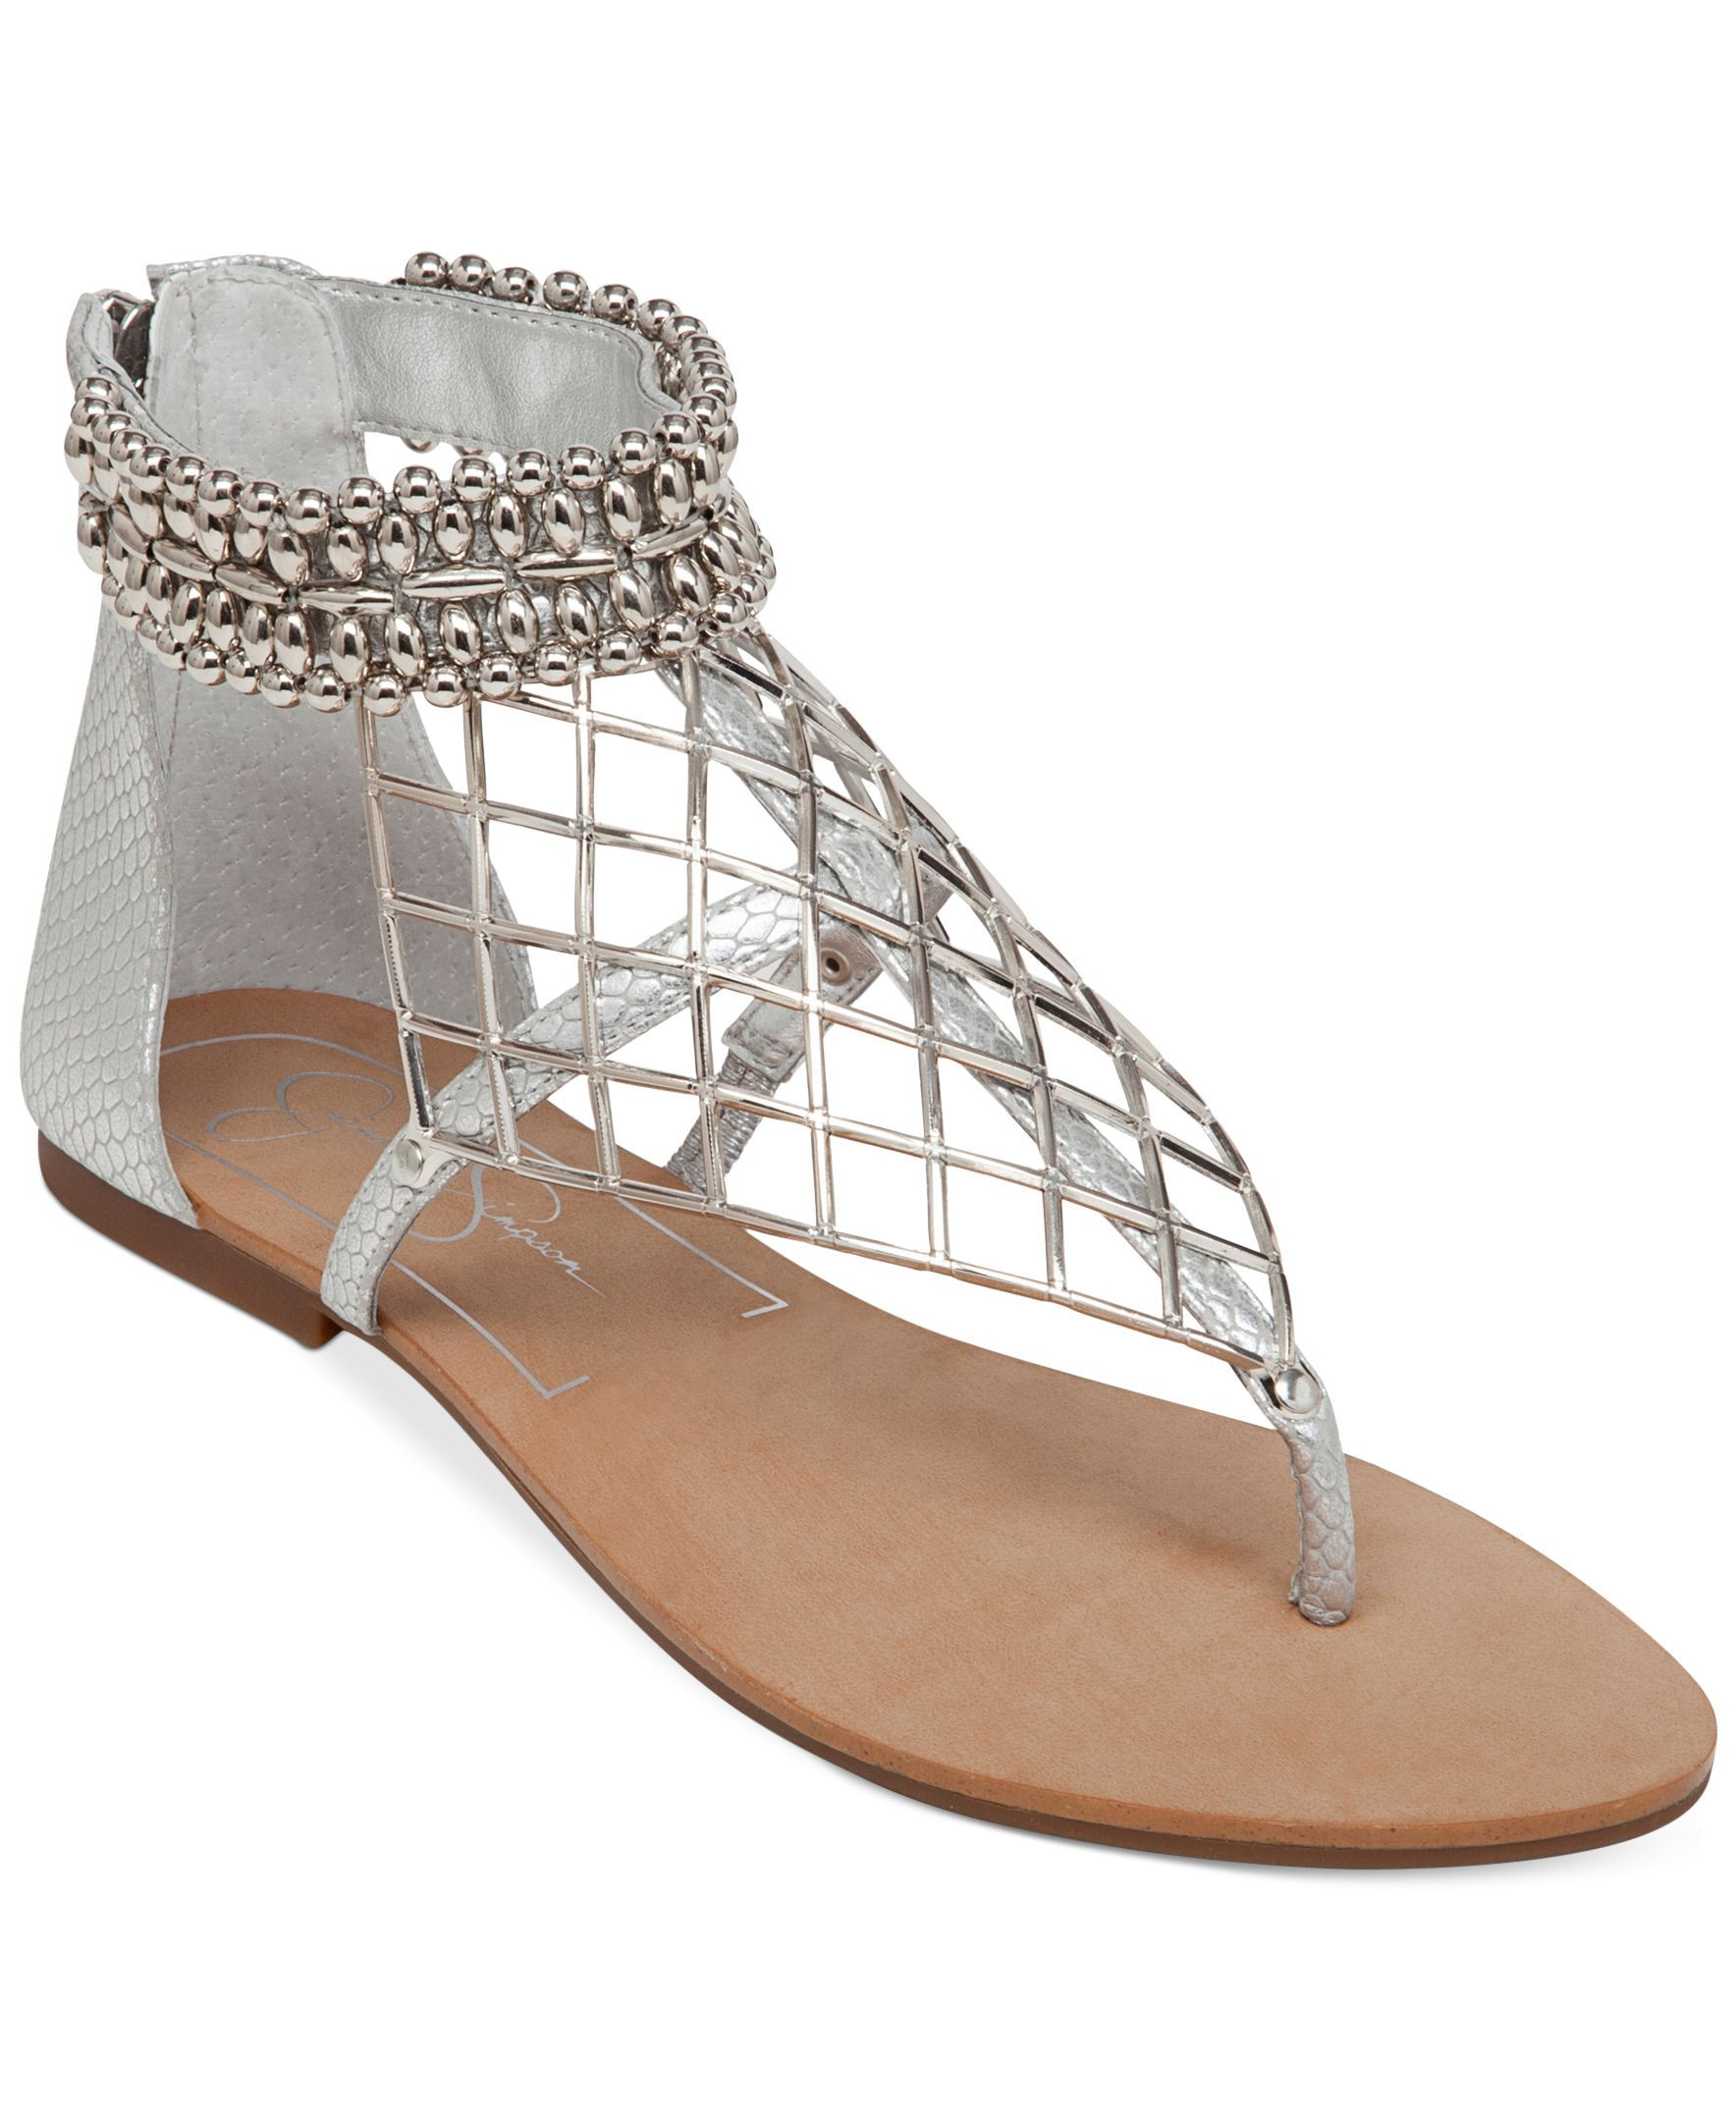 bcd0368a3 Jessica Simpson Kyla Hooded Flat Thong Sandals